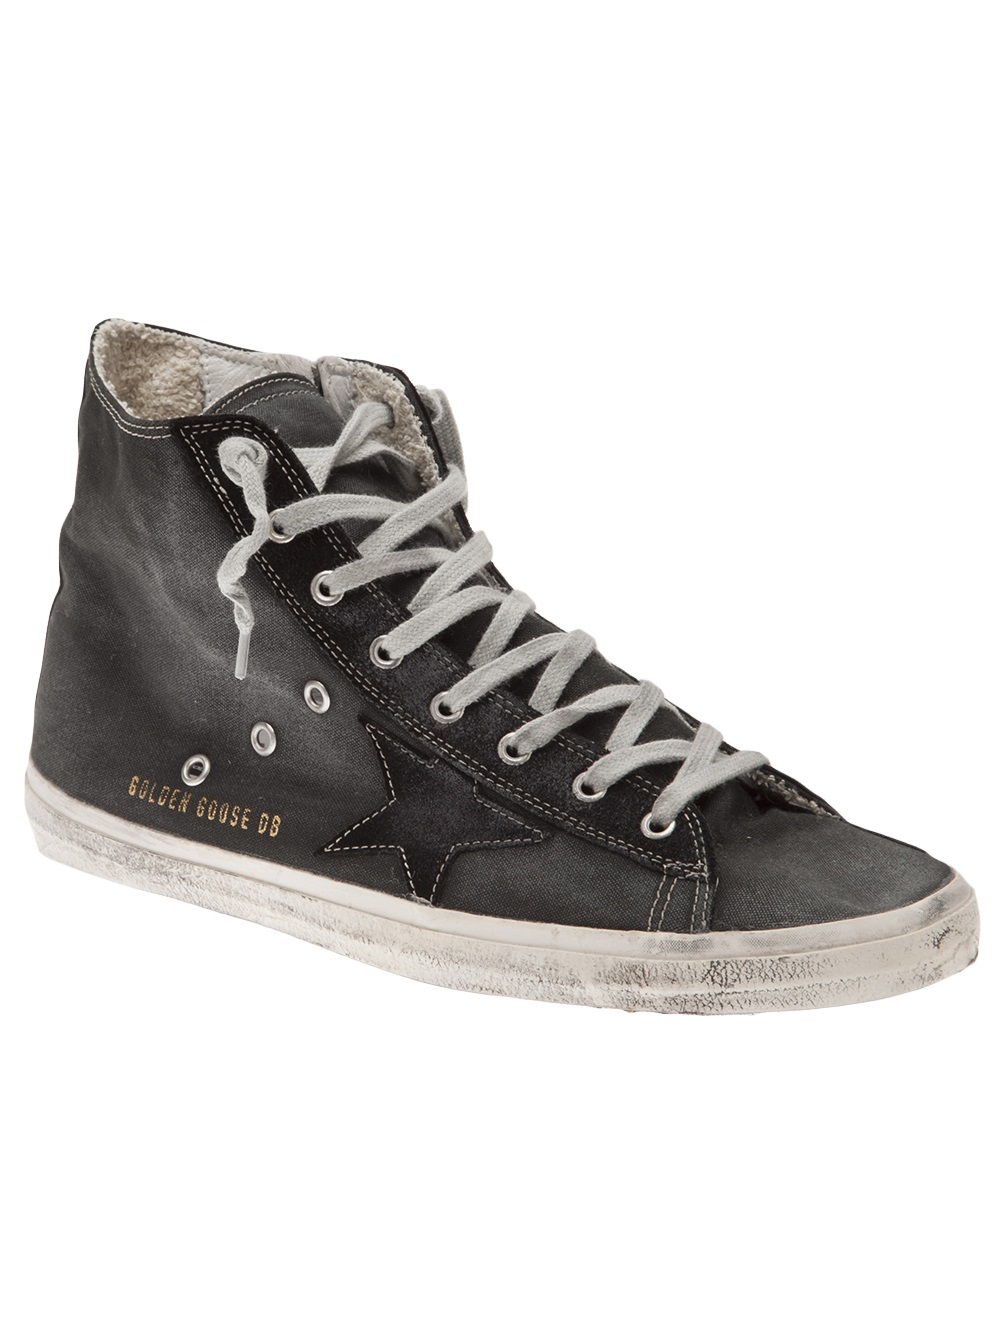 lyst golden goose deluxe brand francy alta sneakers in gray for men. Black Bedroom Furniture Sets. Home Design Ideas